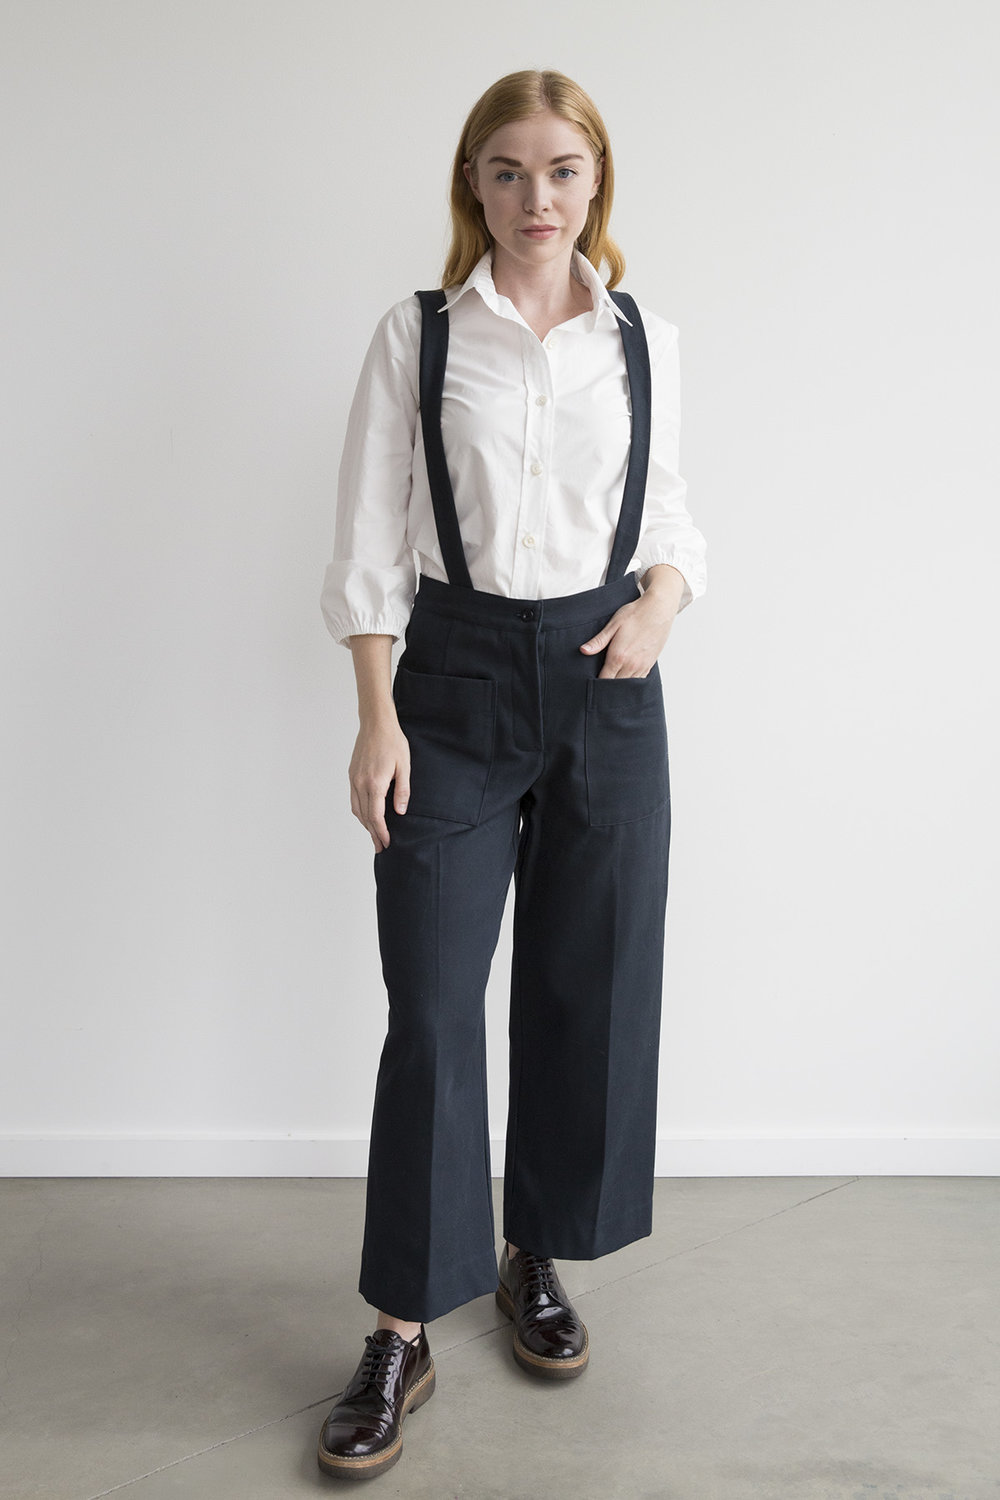 StellaLove_AW16_Suspend_Pant_front.jpg